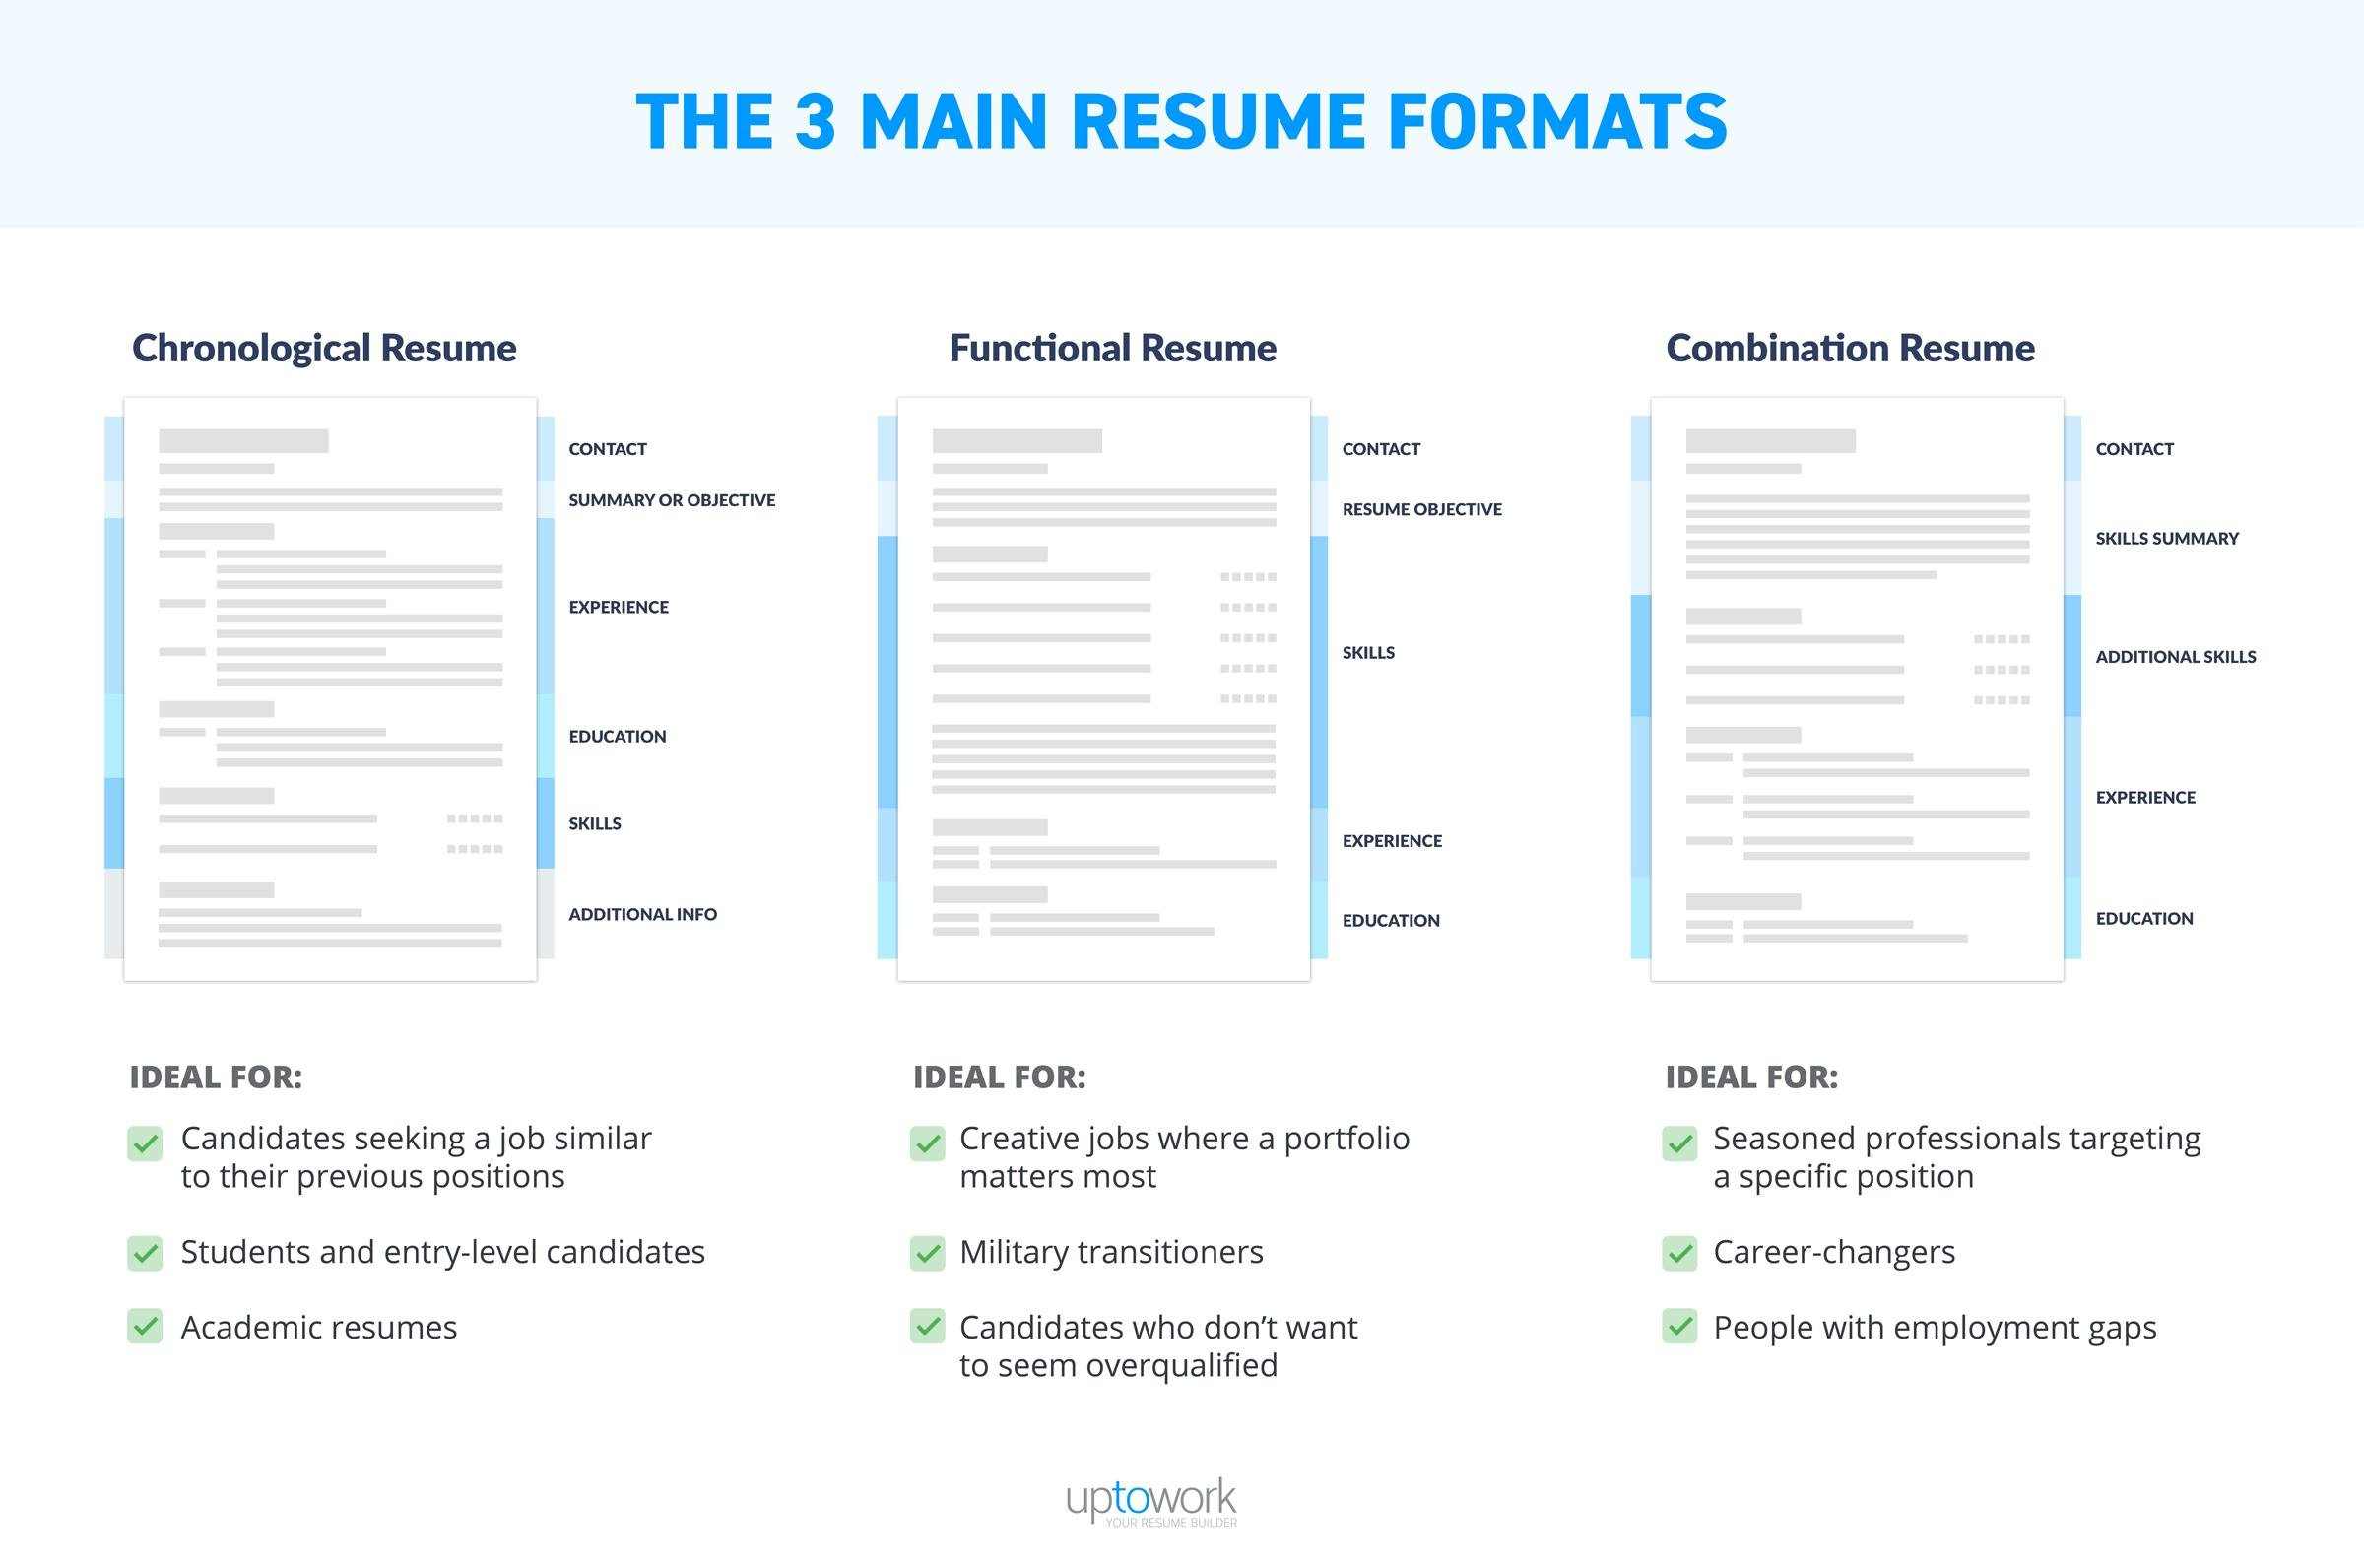 Kinds of resume format basilosaur kinds altavistaventures Image collections